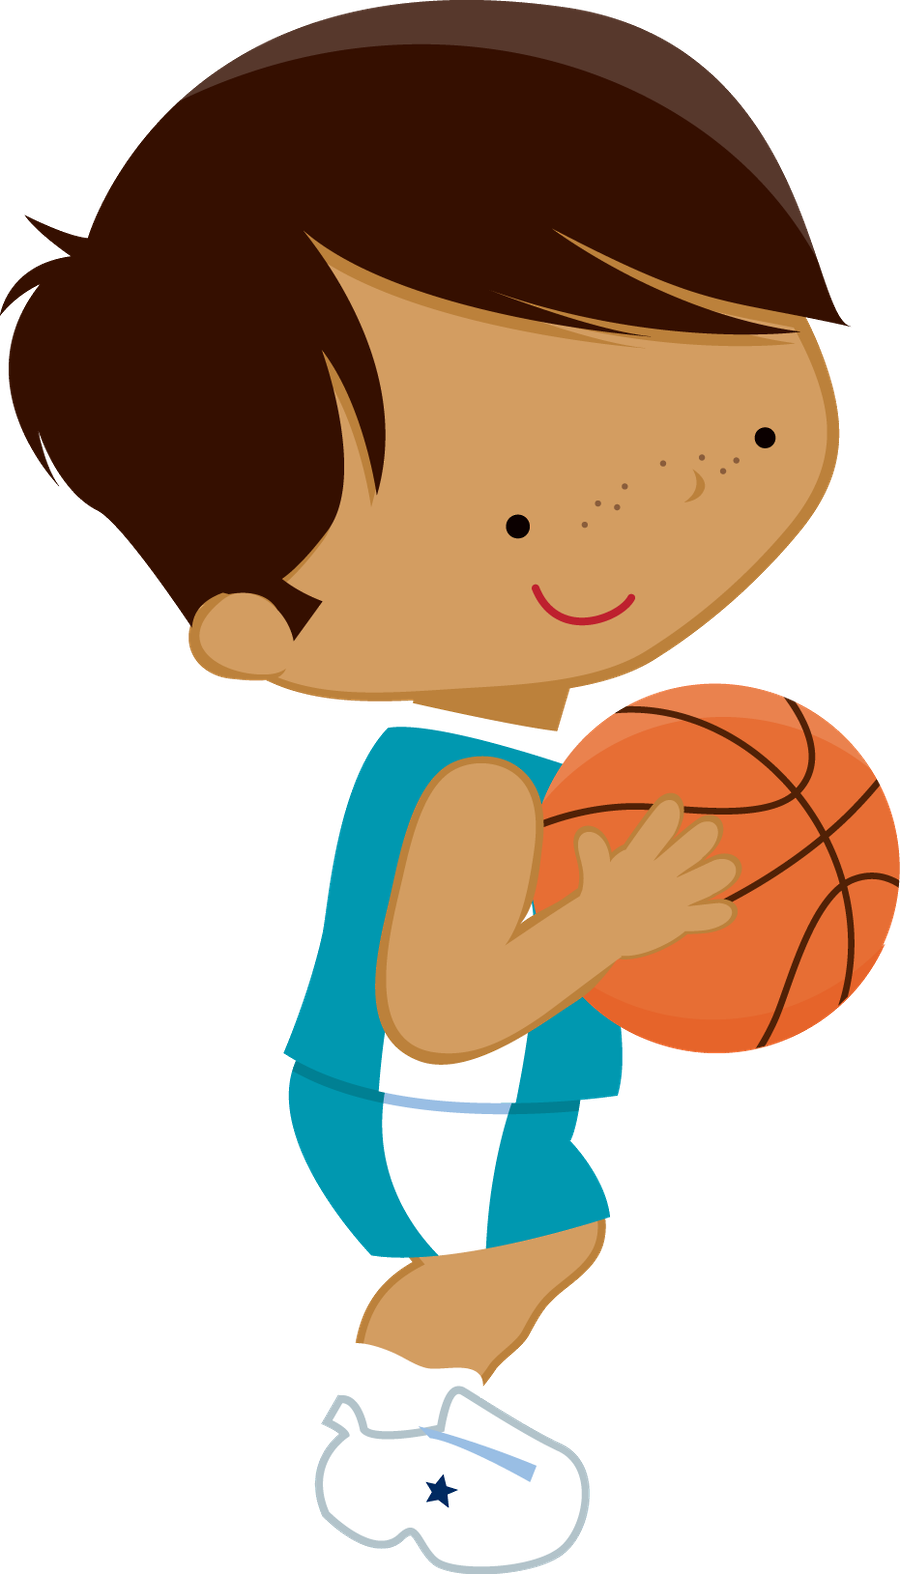 Baby disney basketball clipart banner freeuse stock ZWD_White_Star - Minus | NIÑOS!!! | Pinterest | Clip art, Profile ... banner freeuse stock